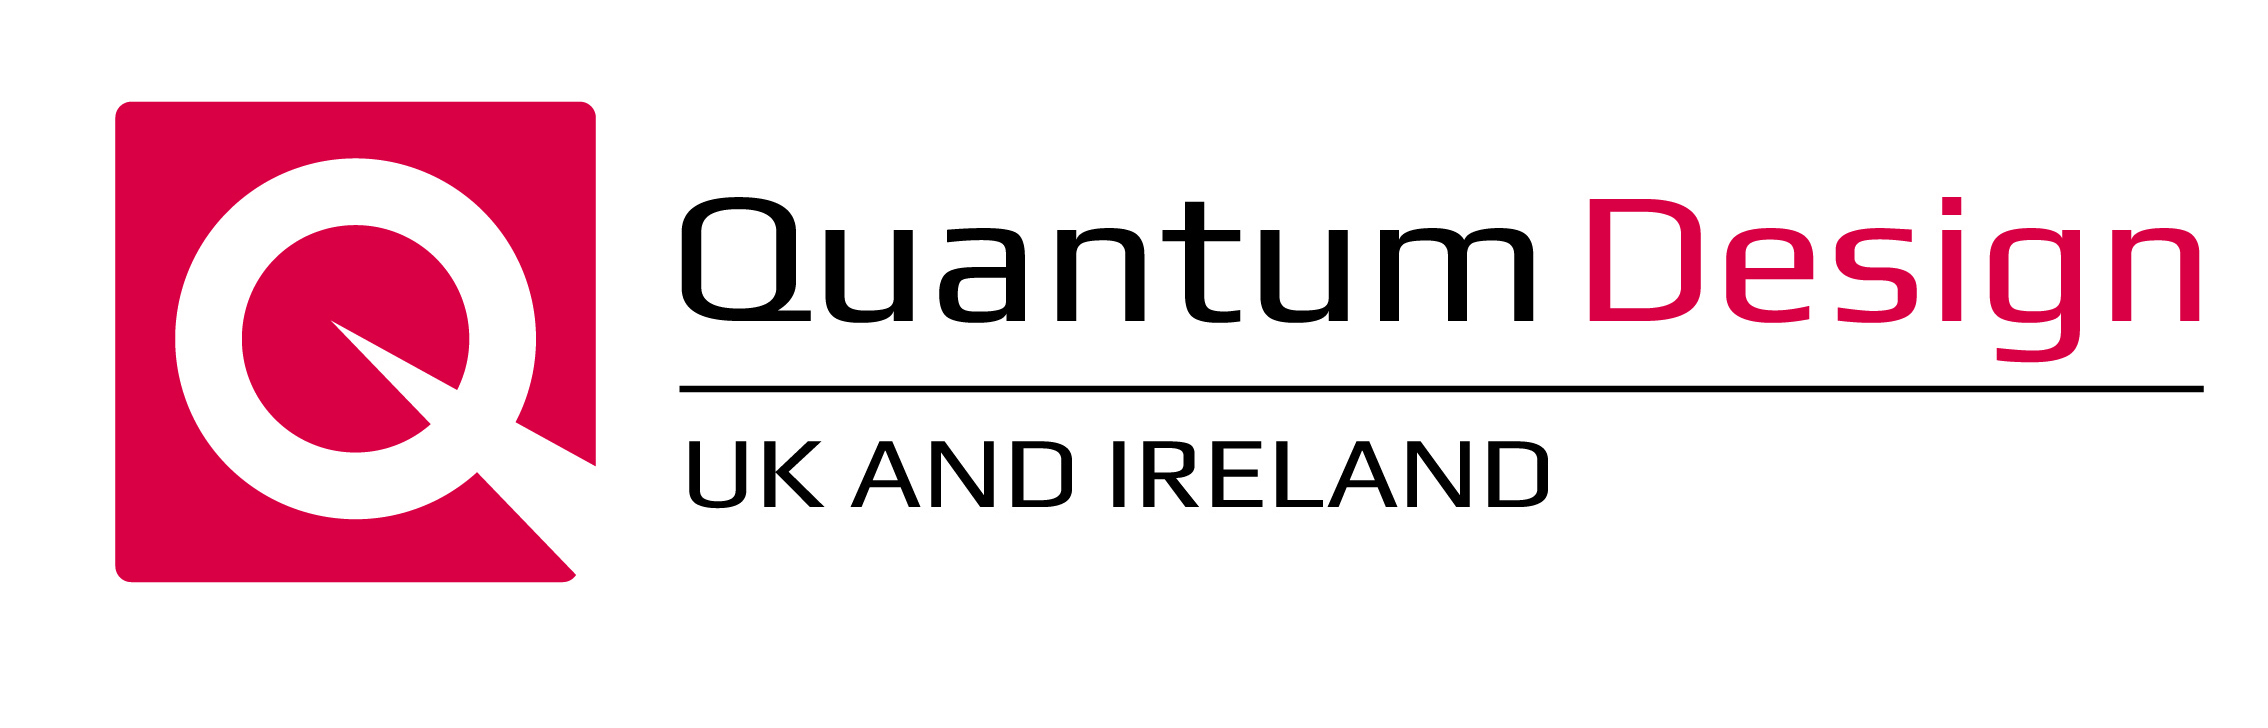 QD UK-IRELAND logo.jpg